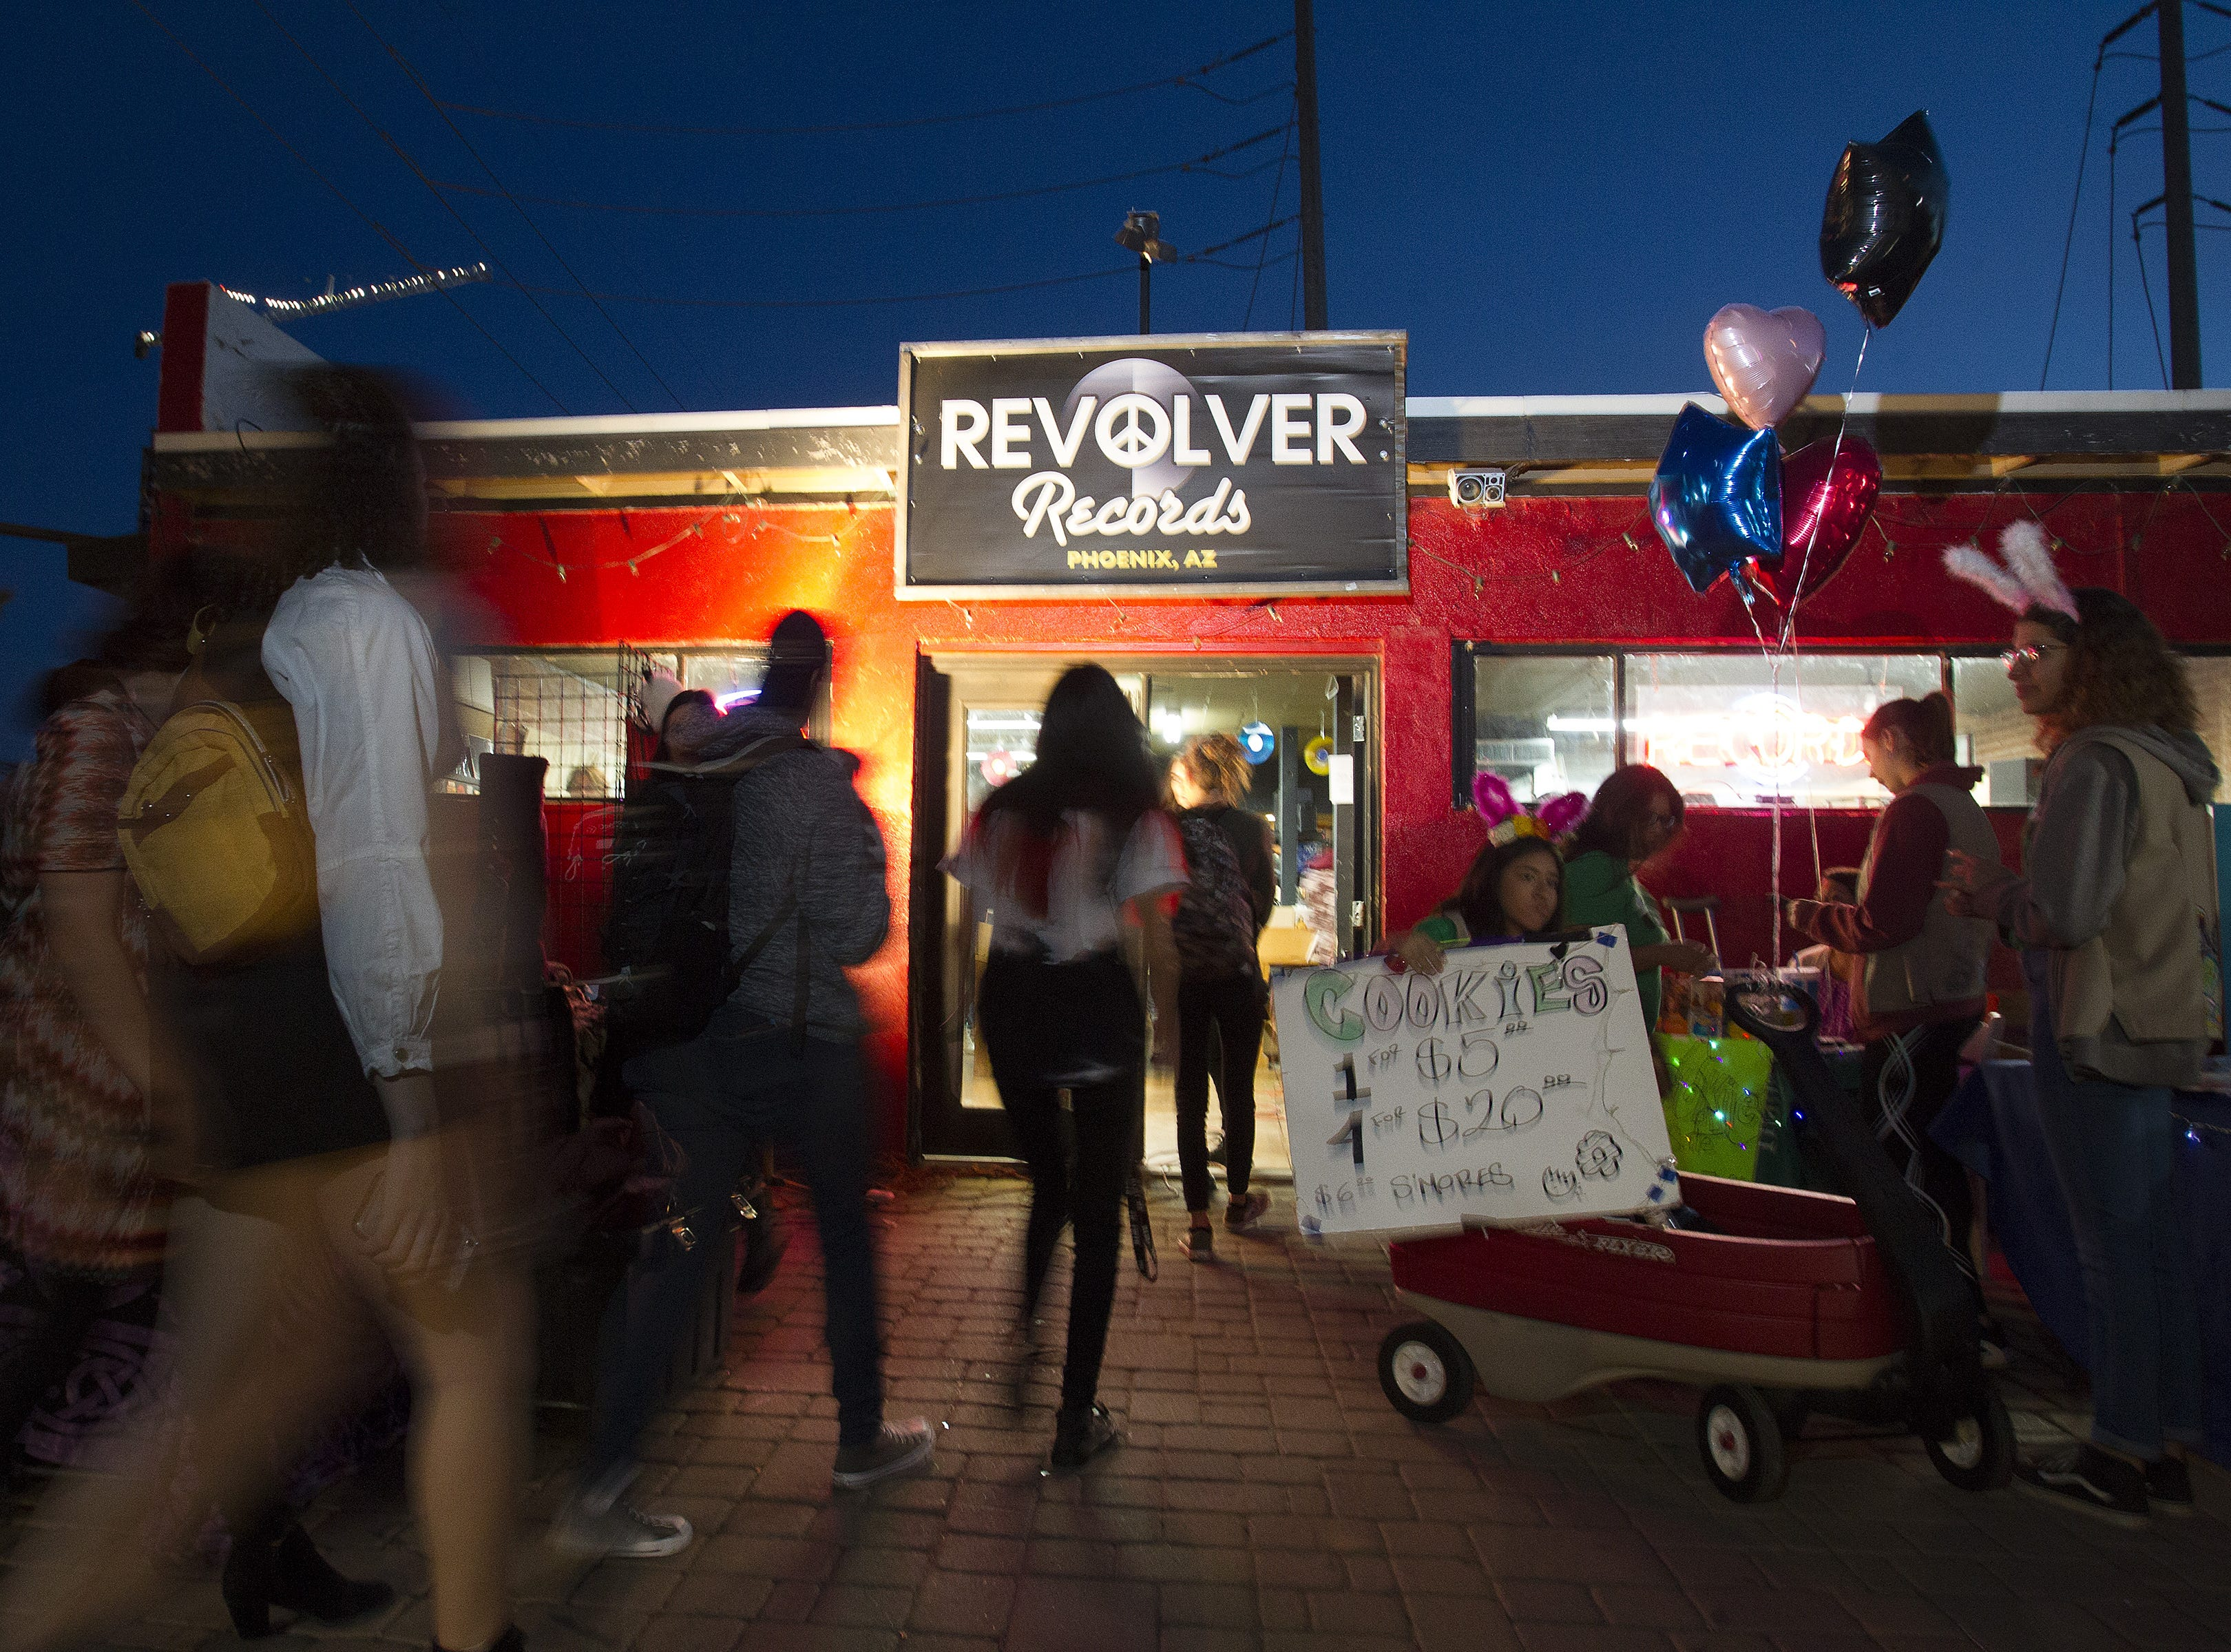 Music lovers make their way into Revolver Records as Girl Scouts sell cookies during First Friday in downtown Phoenix, Feb. 1, 2019. Revolver Records has all merchandise at 50 percent off and will be closing its doors Feb. 10.